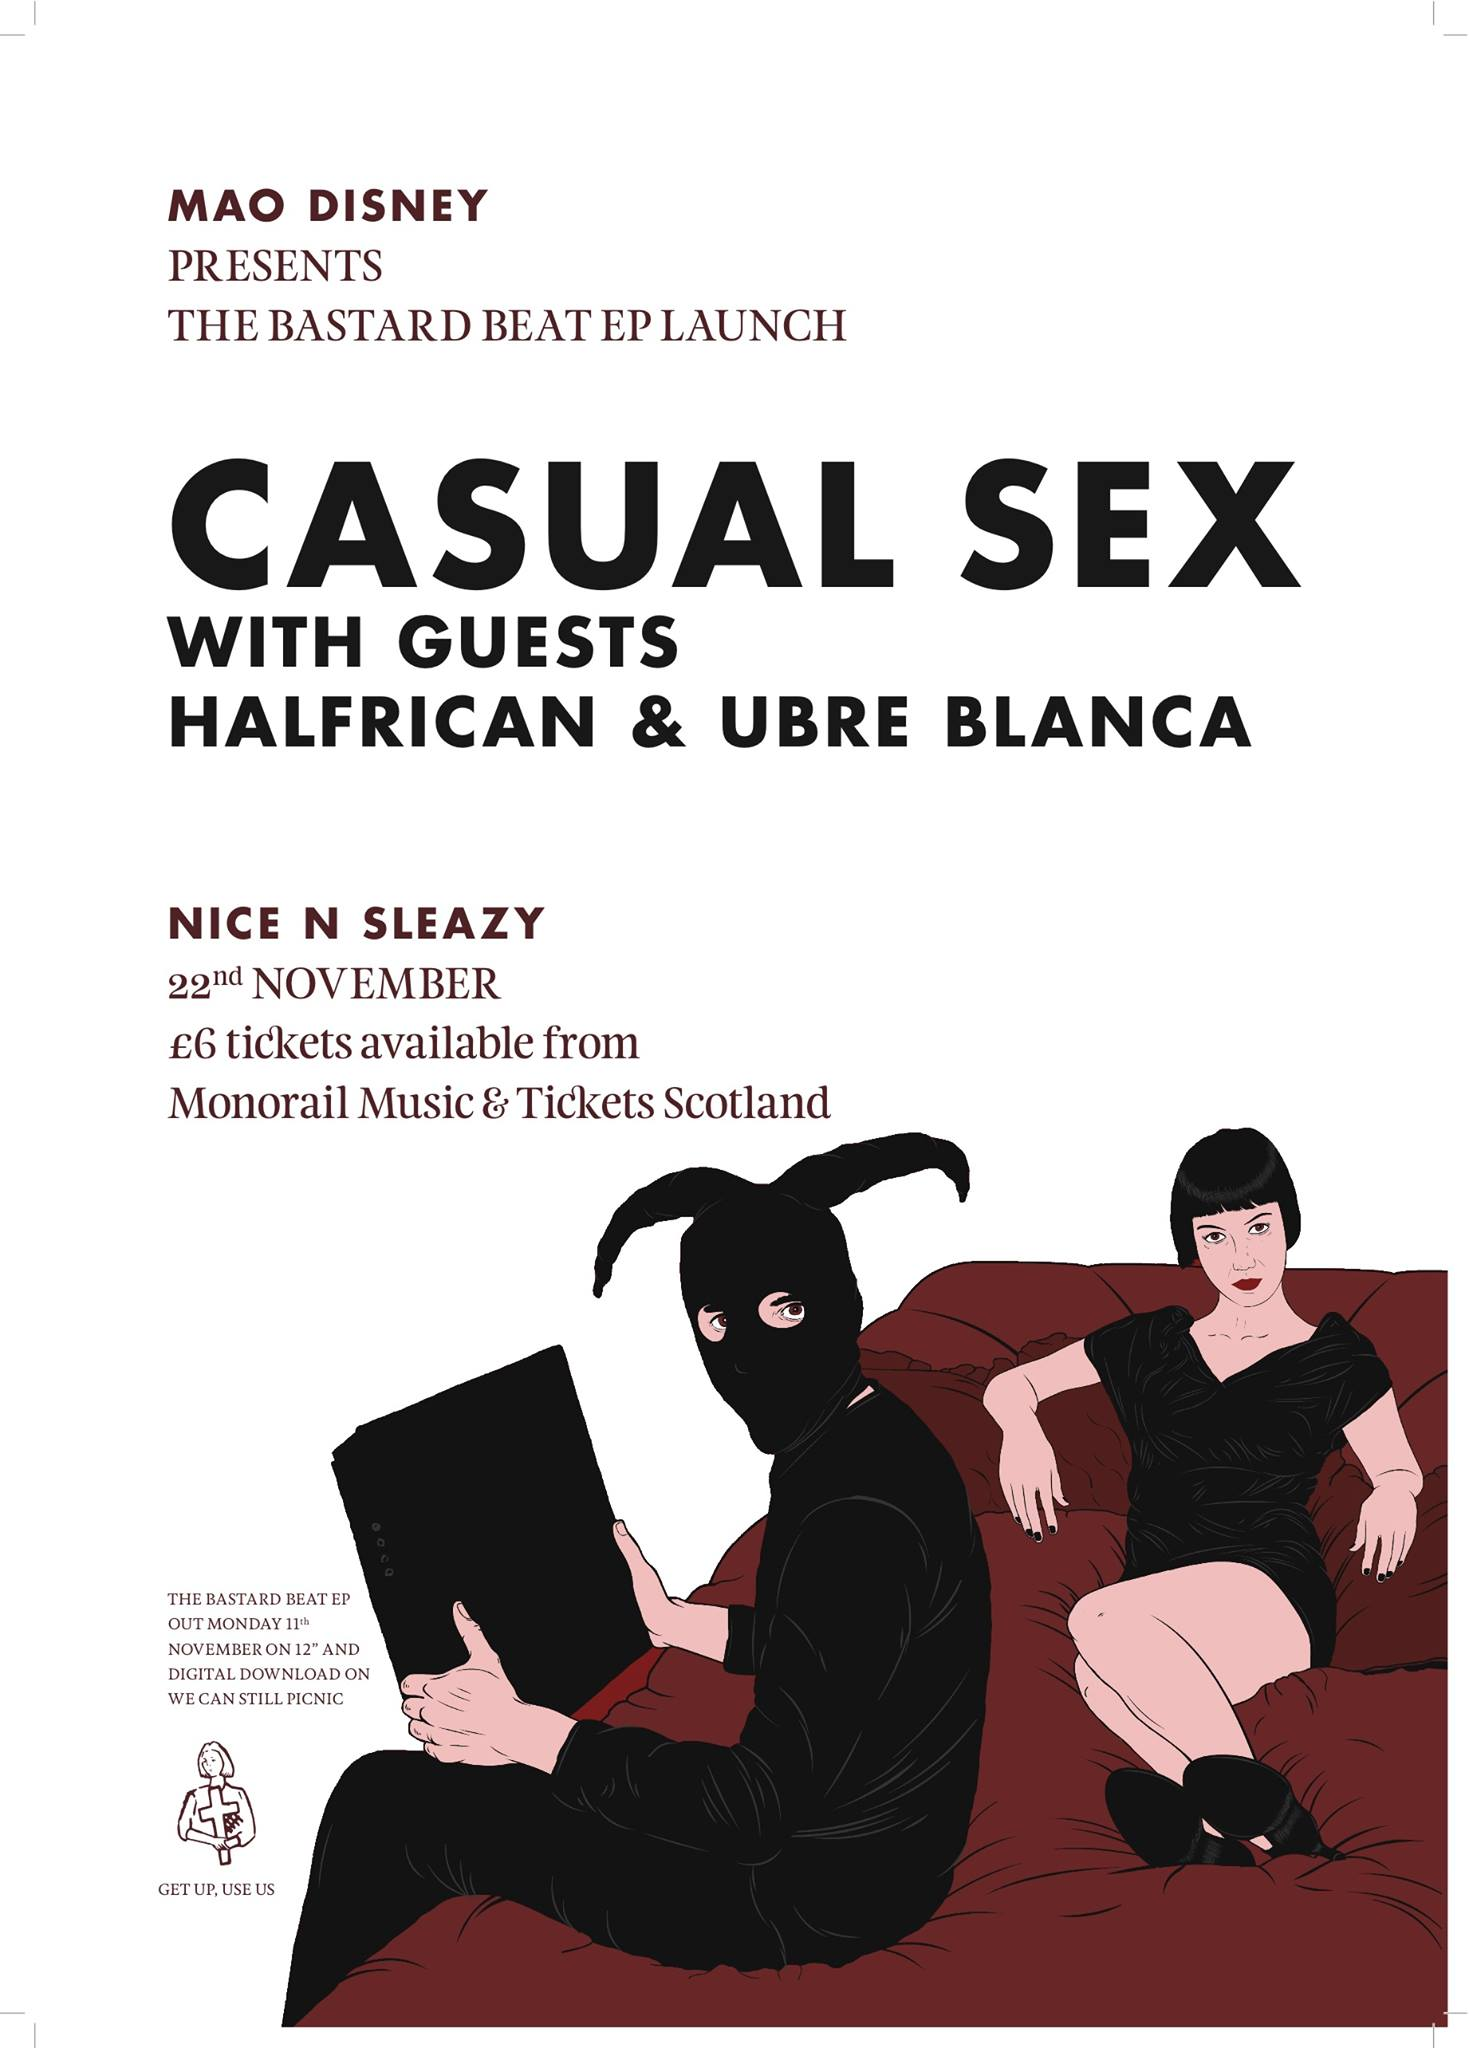 casual sex launch 22 nov.jpg